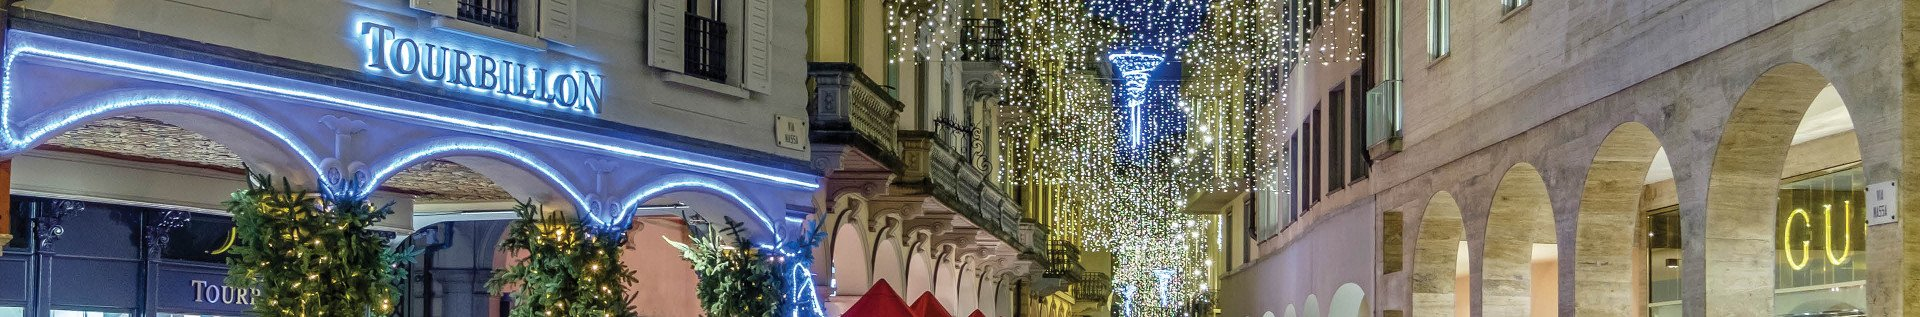 Luxury Shops with Cross-Street Decorations